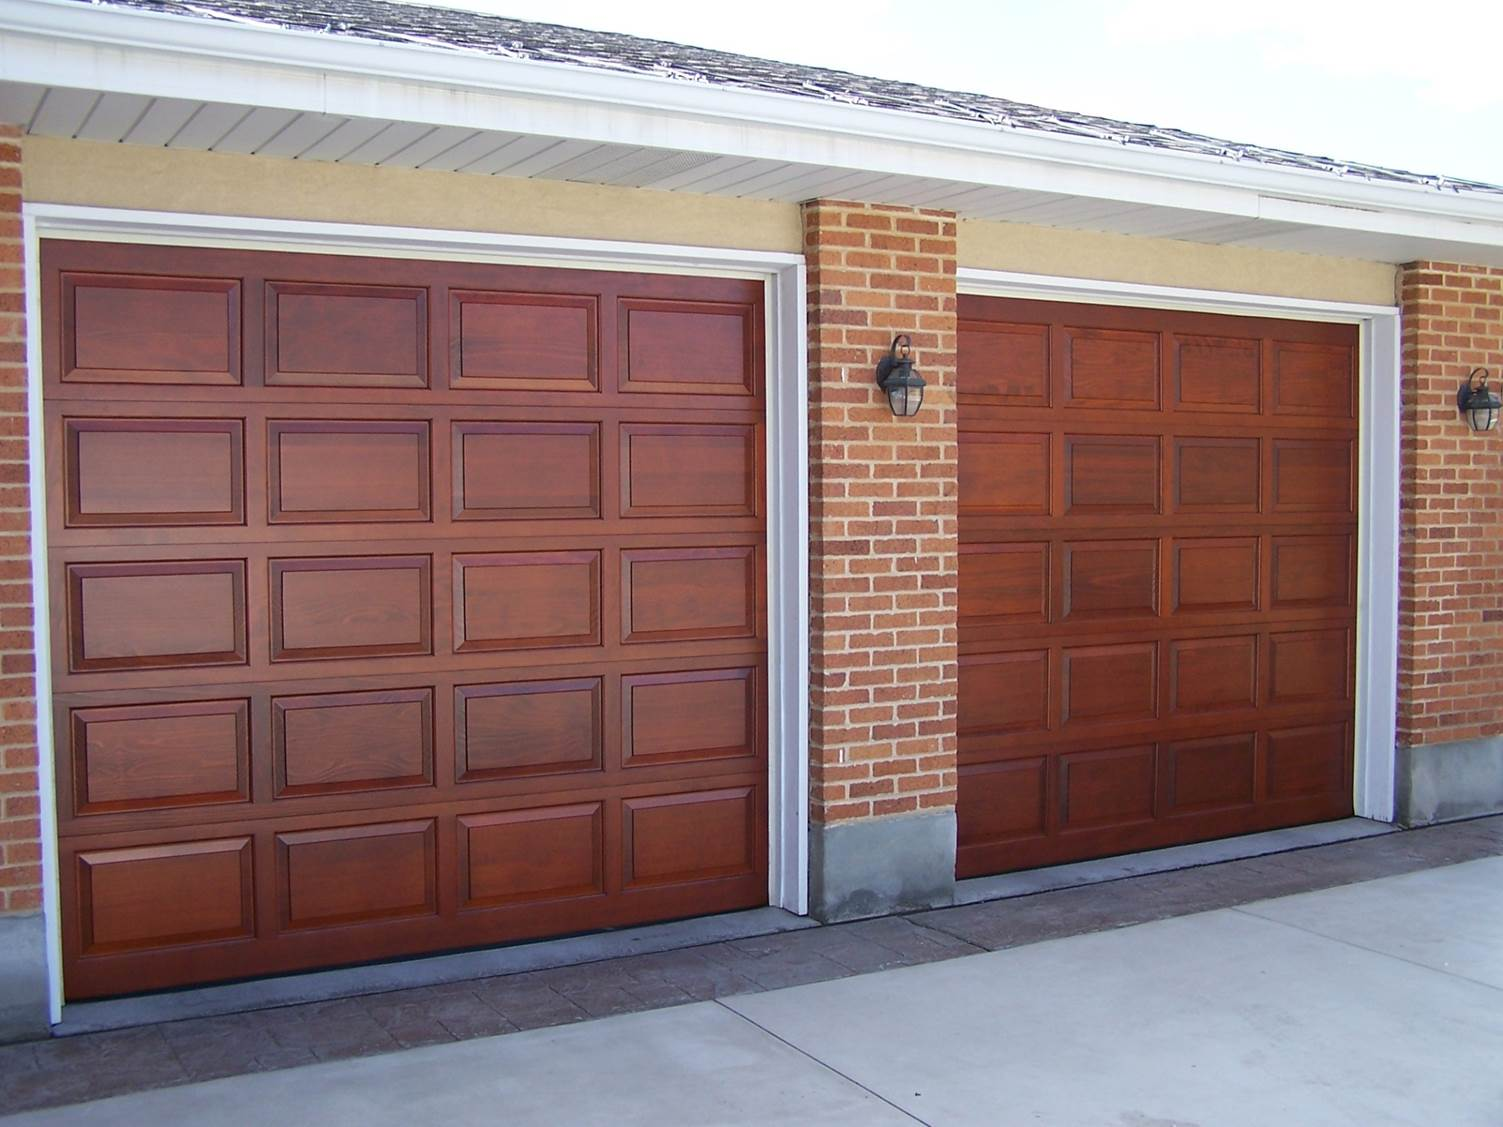 House with wood garage door - Salt Lake City Residential Garage Doors And Authentic Real Wood Garage Doors